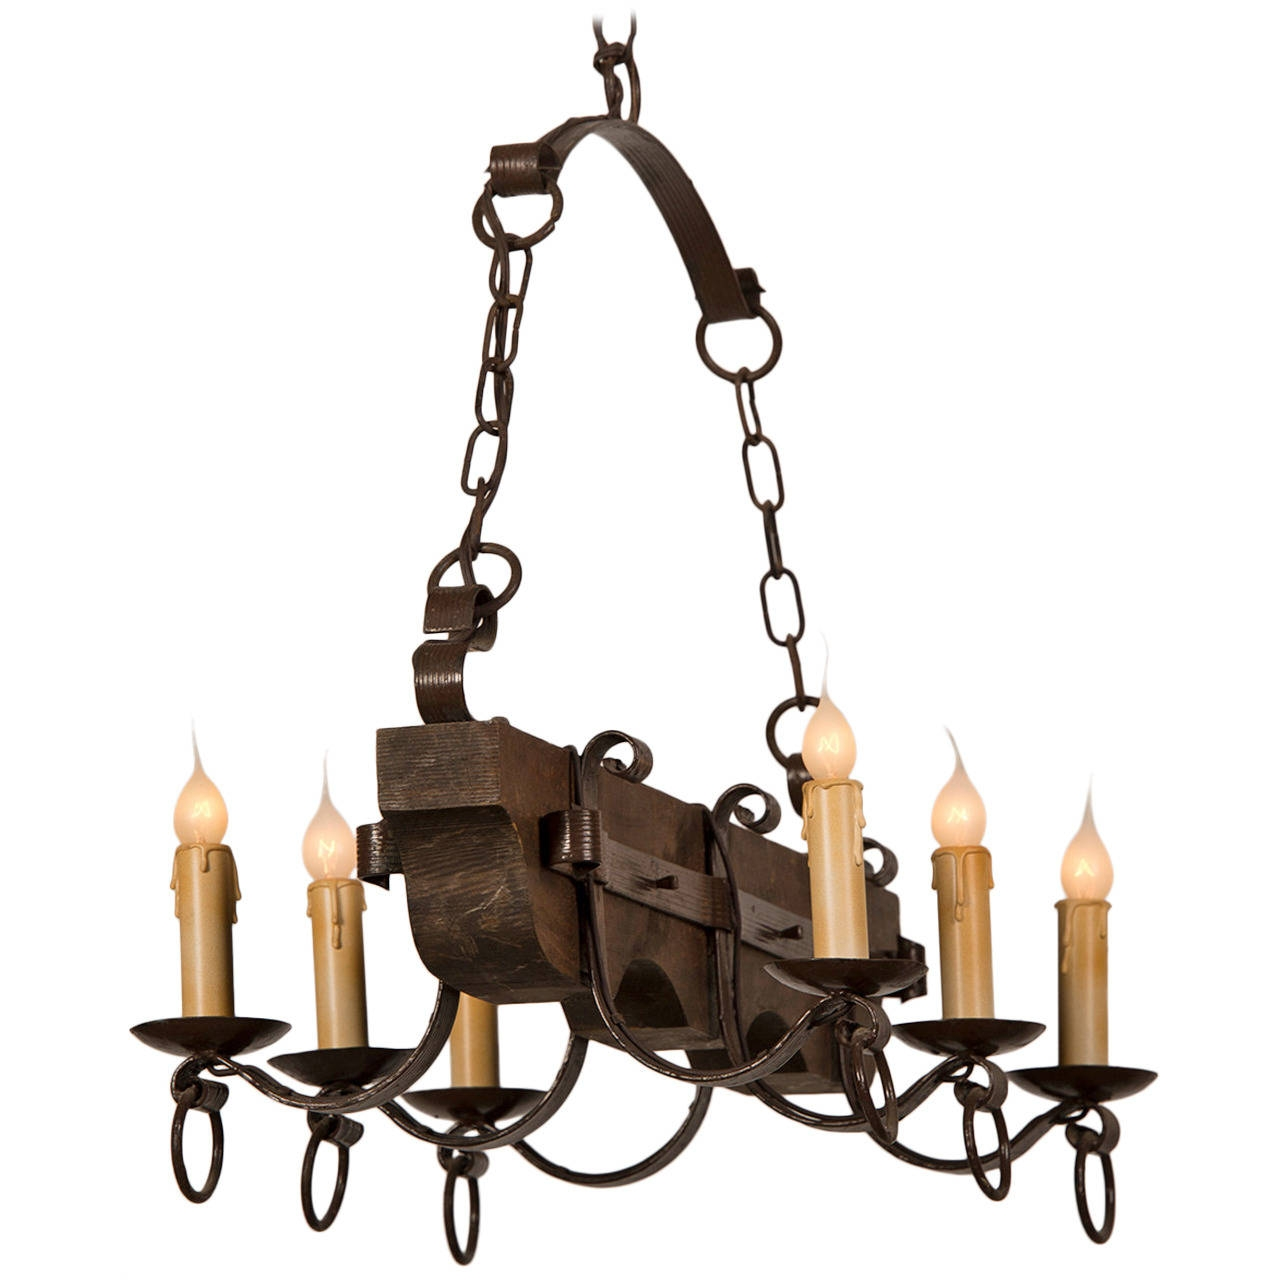 Black Wrought Iron Chandelier Lighting Roselawnlutheran Regarding Large Iron Chandeliers (Image 4 of 15)